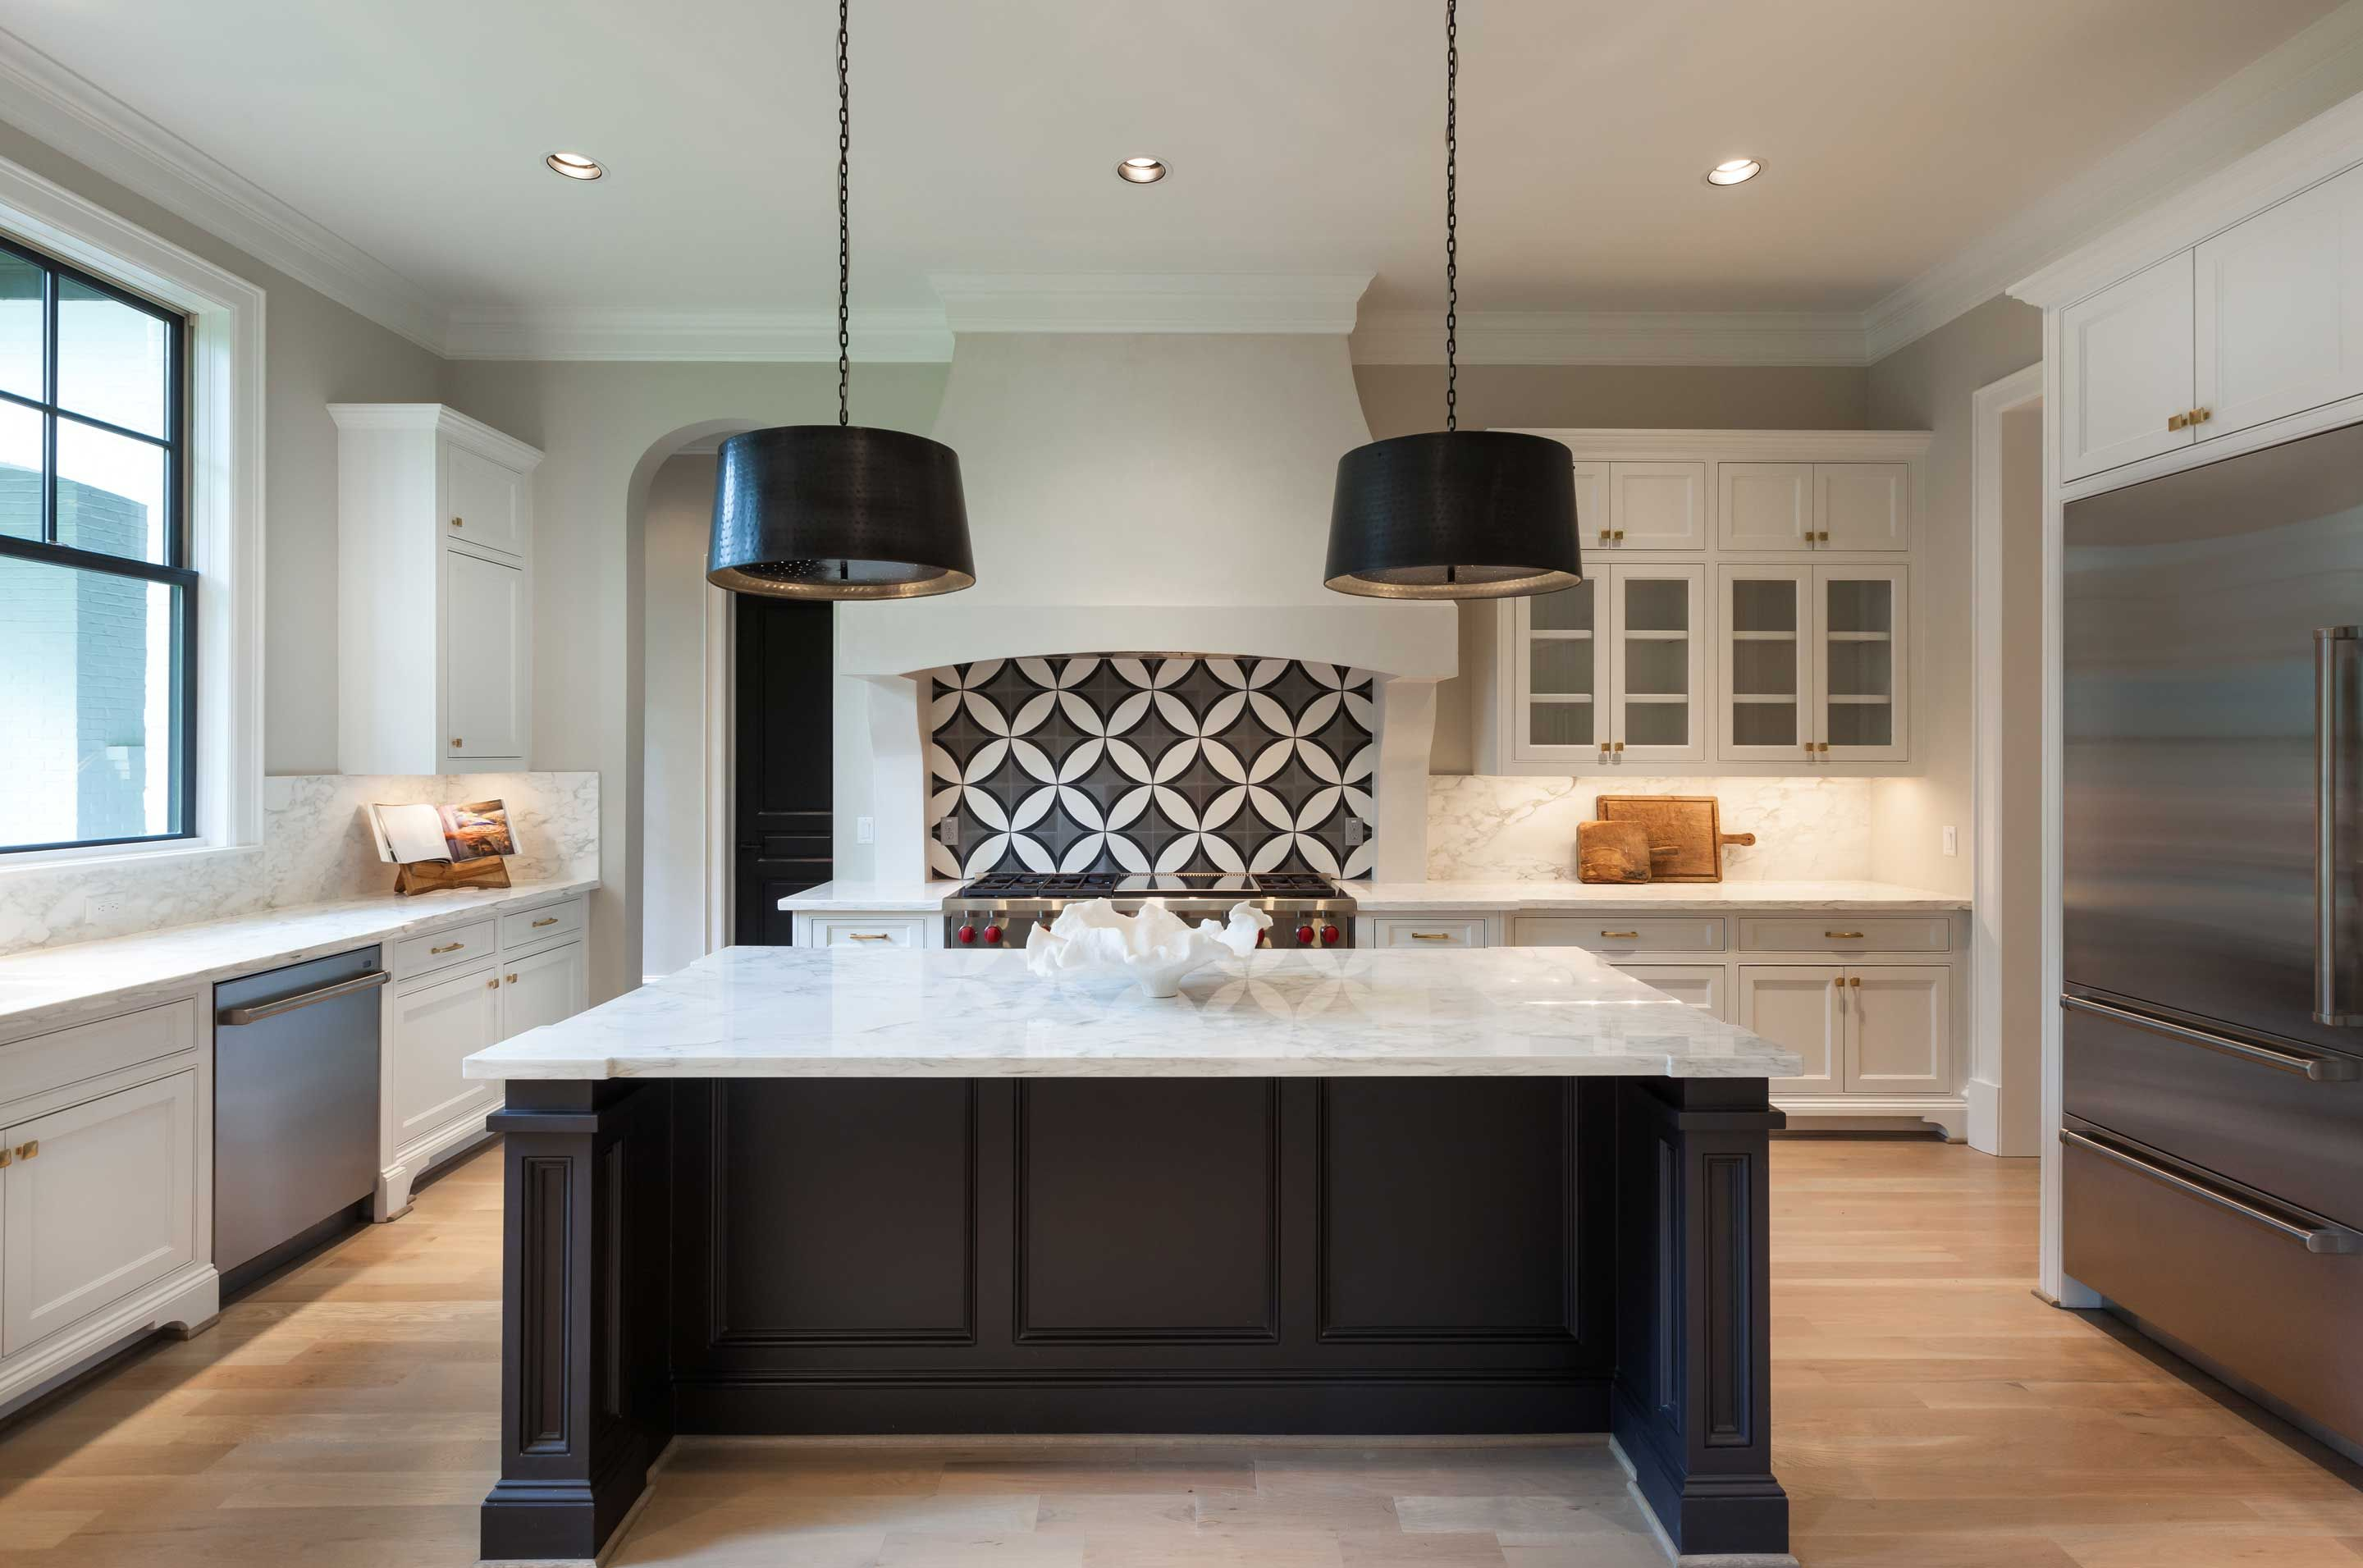 White Cabinets Black Pendants Black Window Dark Island Simple Kitchen Remodel Affordable Kitchen Remodeling Kitchen Remodel Small